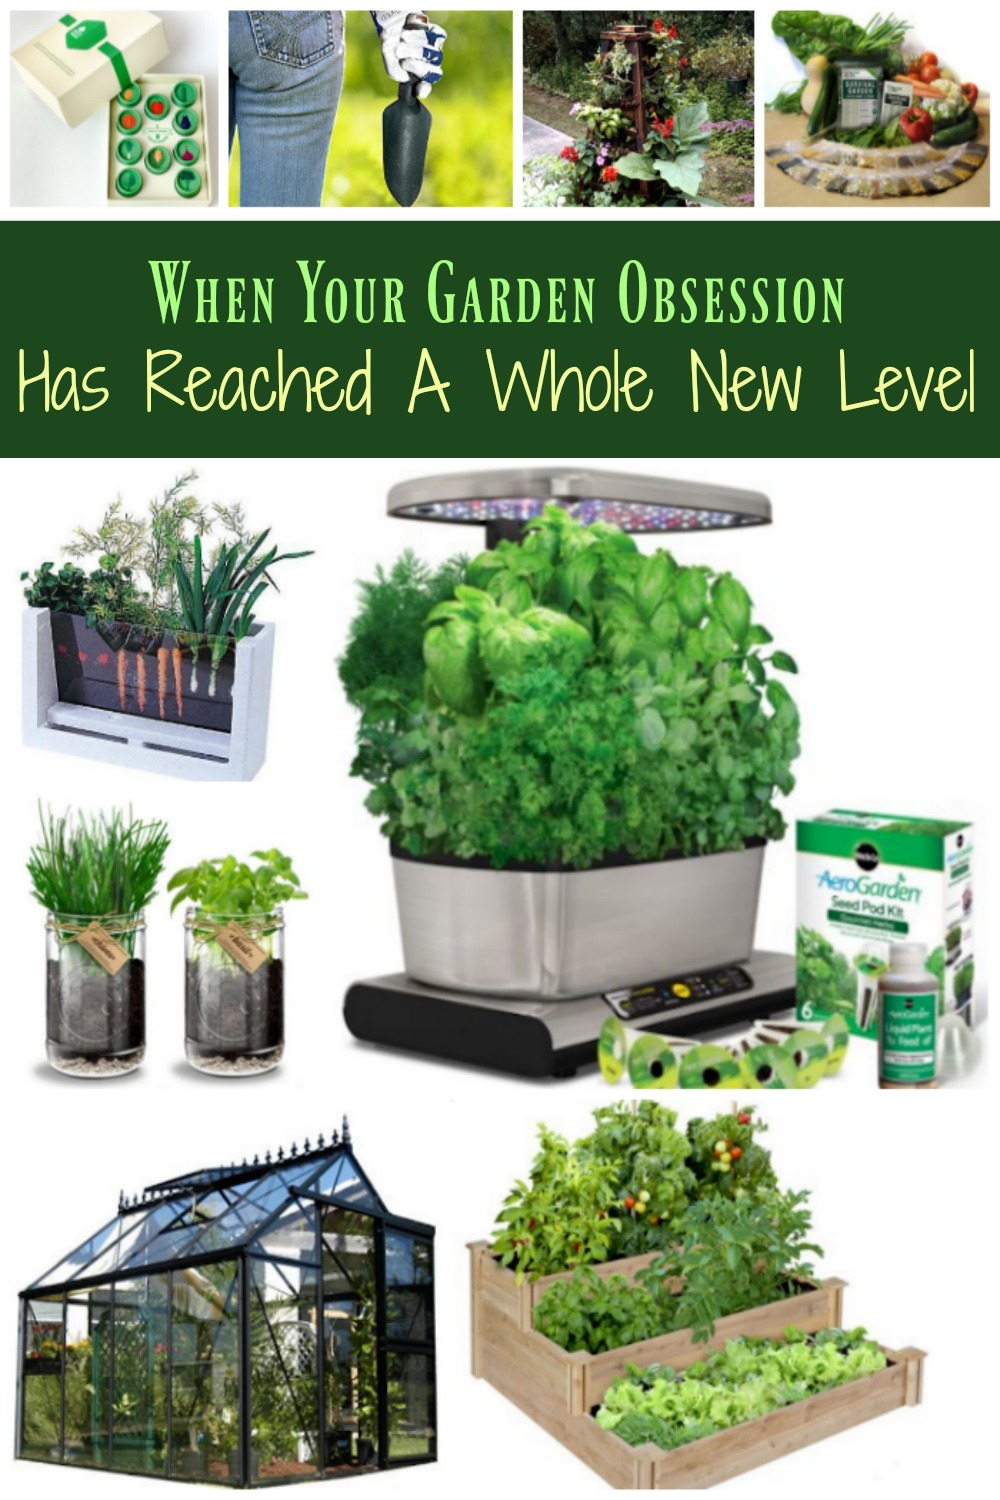 If you or someone you know is obsessed with gardening, these gardening gifts are sure to please! Ideas for both the newbie and the most experienced gardener